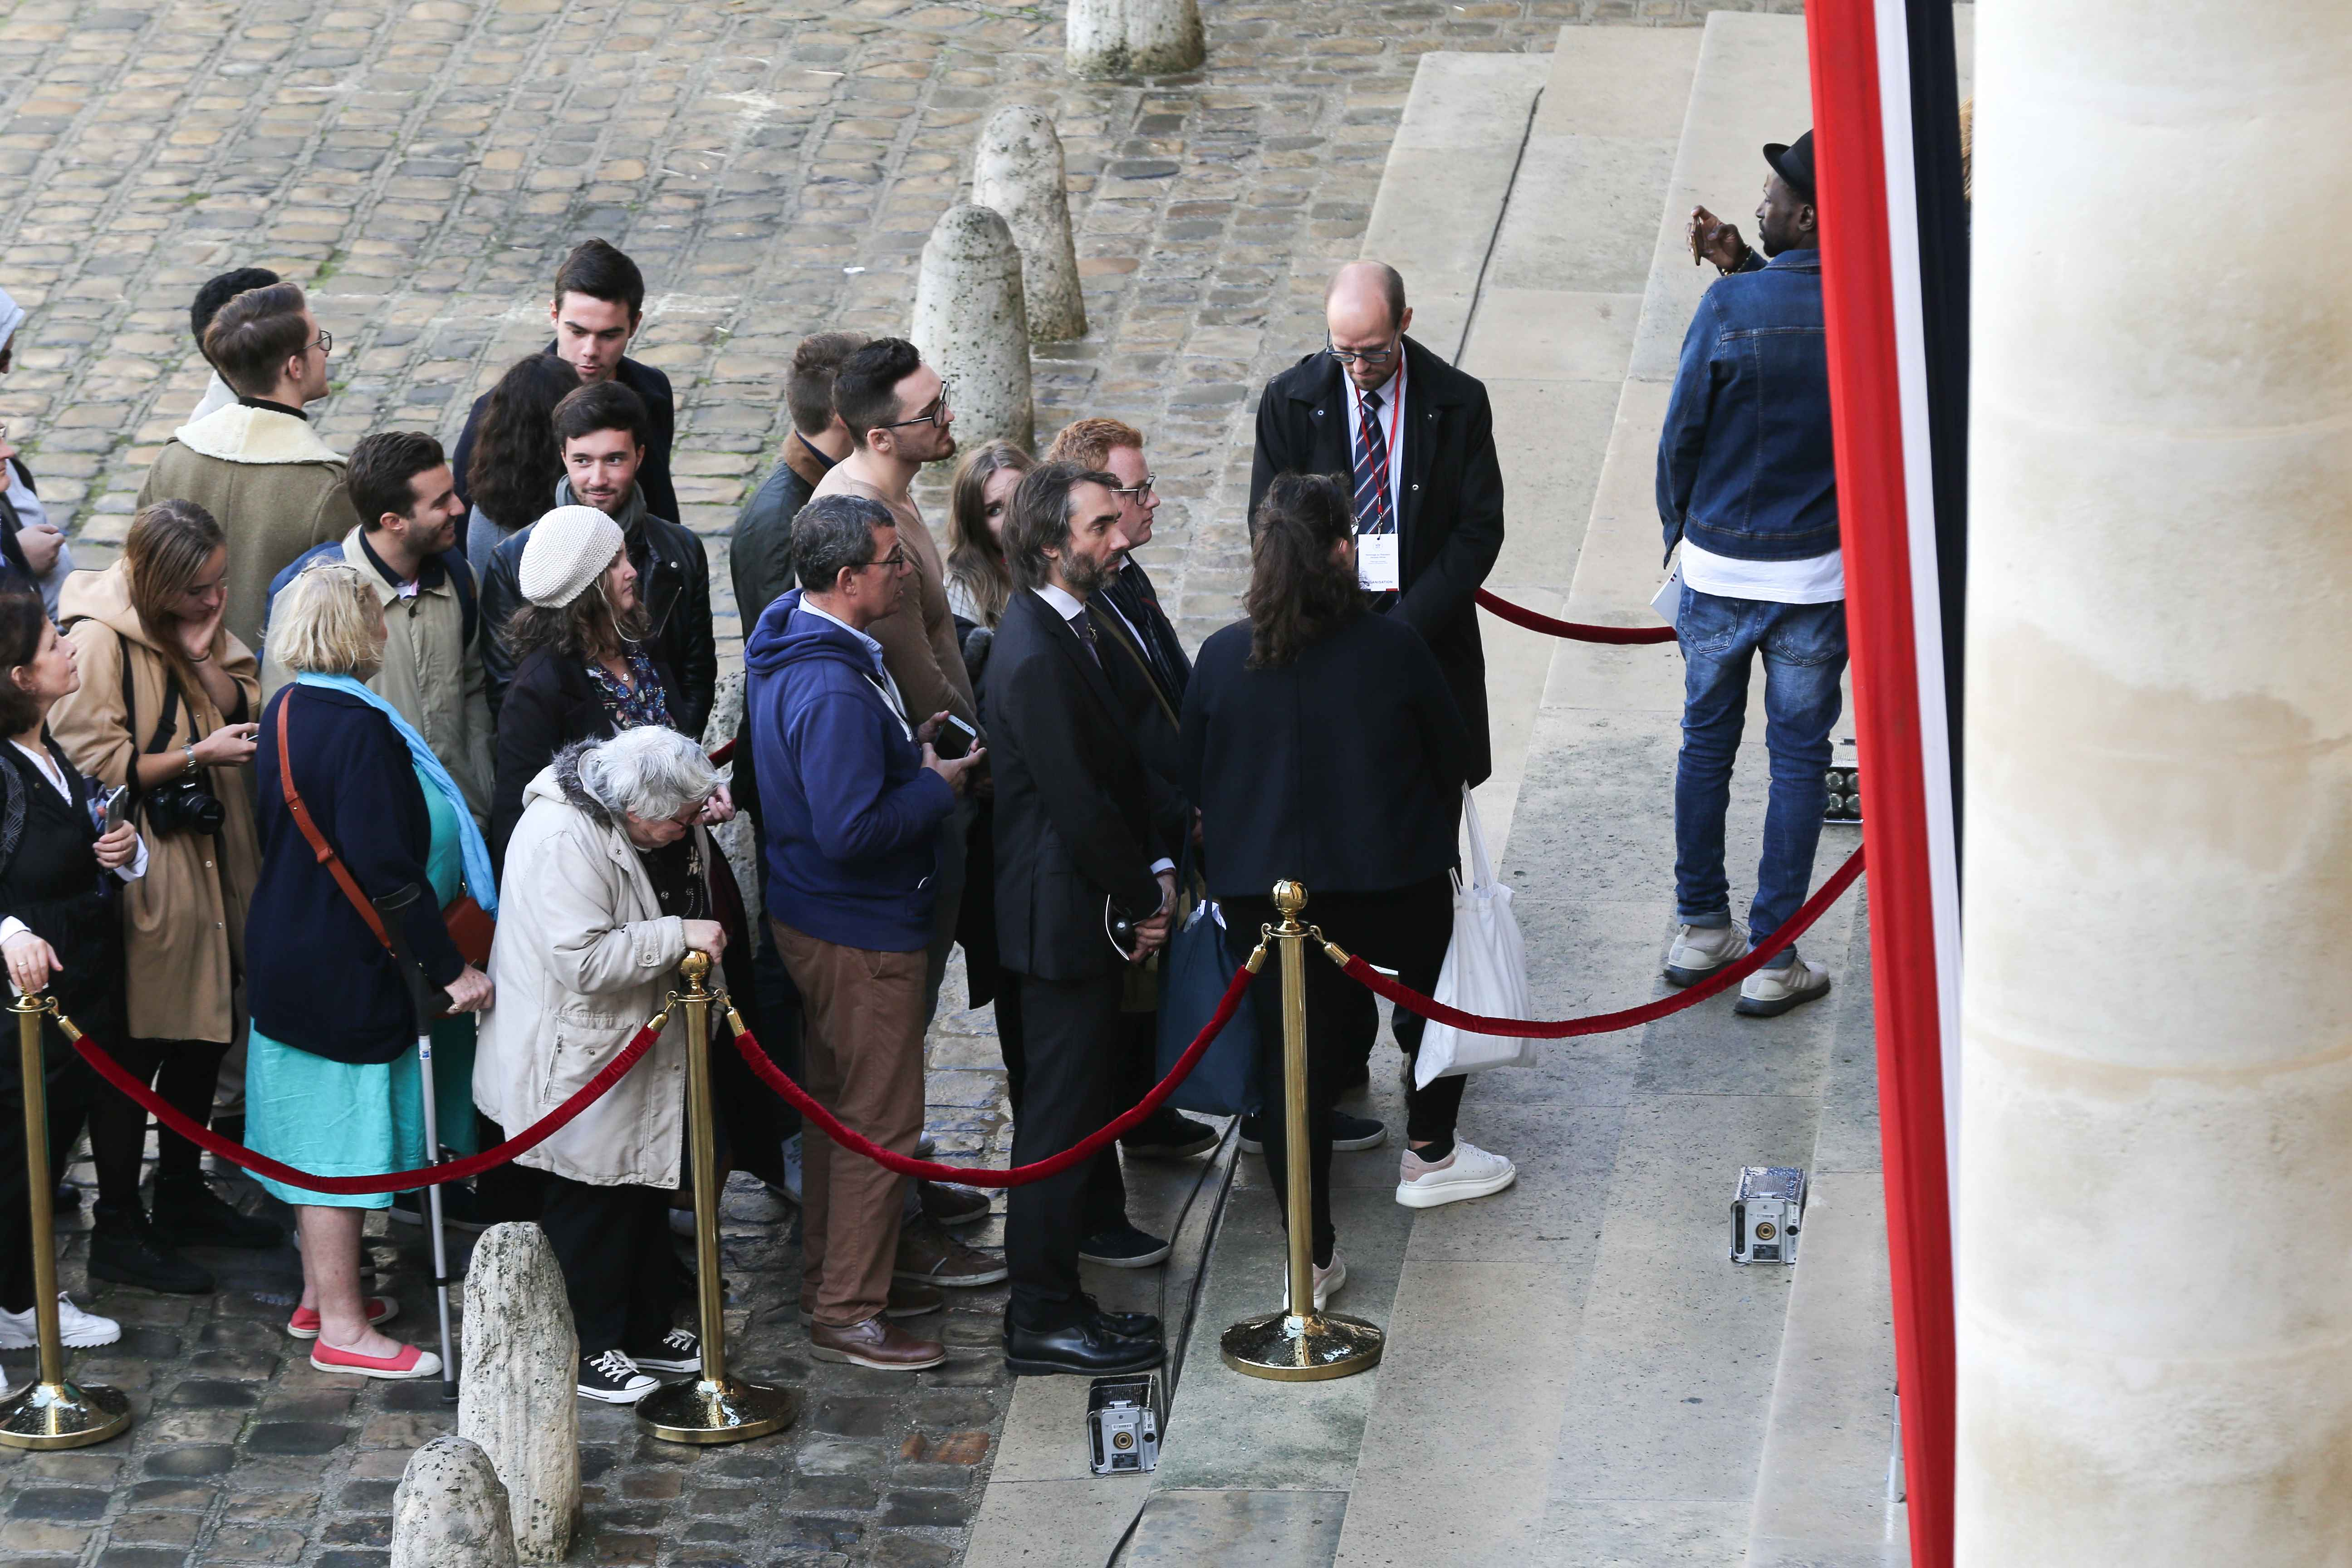 Paris mayoral's dissident candidate from LREM (La Republique en Marche) Cedric Villani (C) queues to say a final farewell to former French President Jacques Chirac as the coffin lie in state at the Saint-Louis-des-Invalides cathedral at the Invalides memor